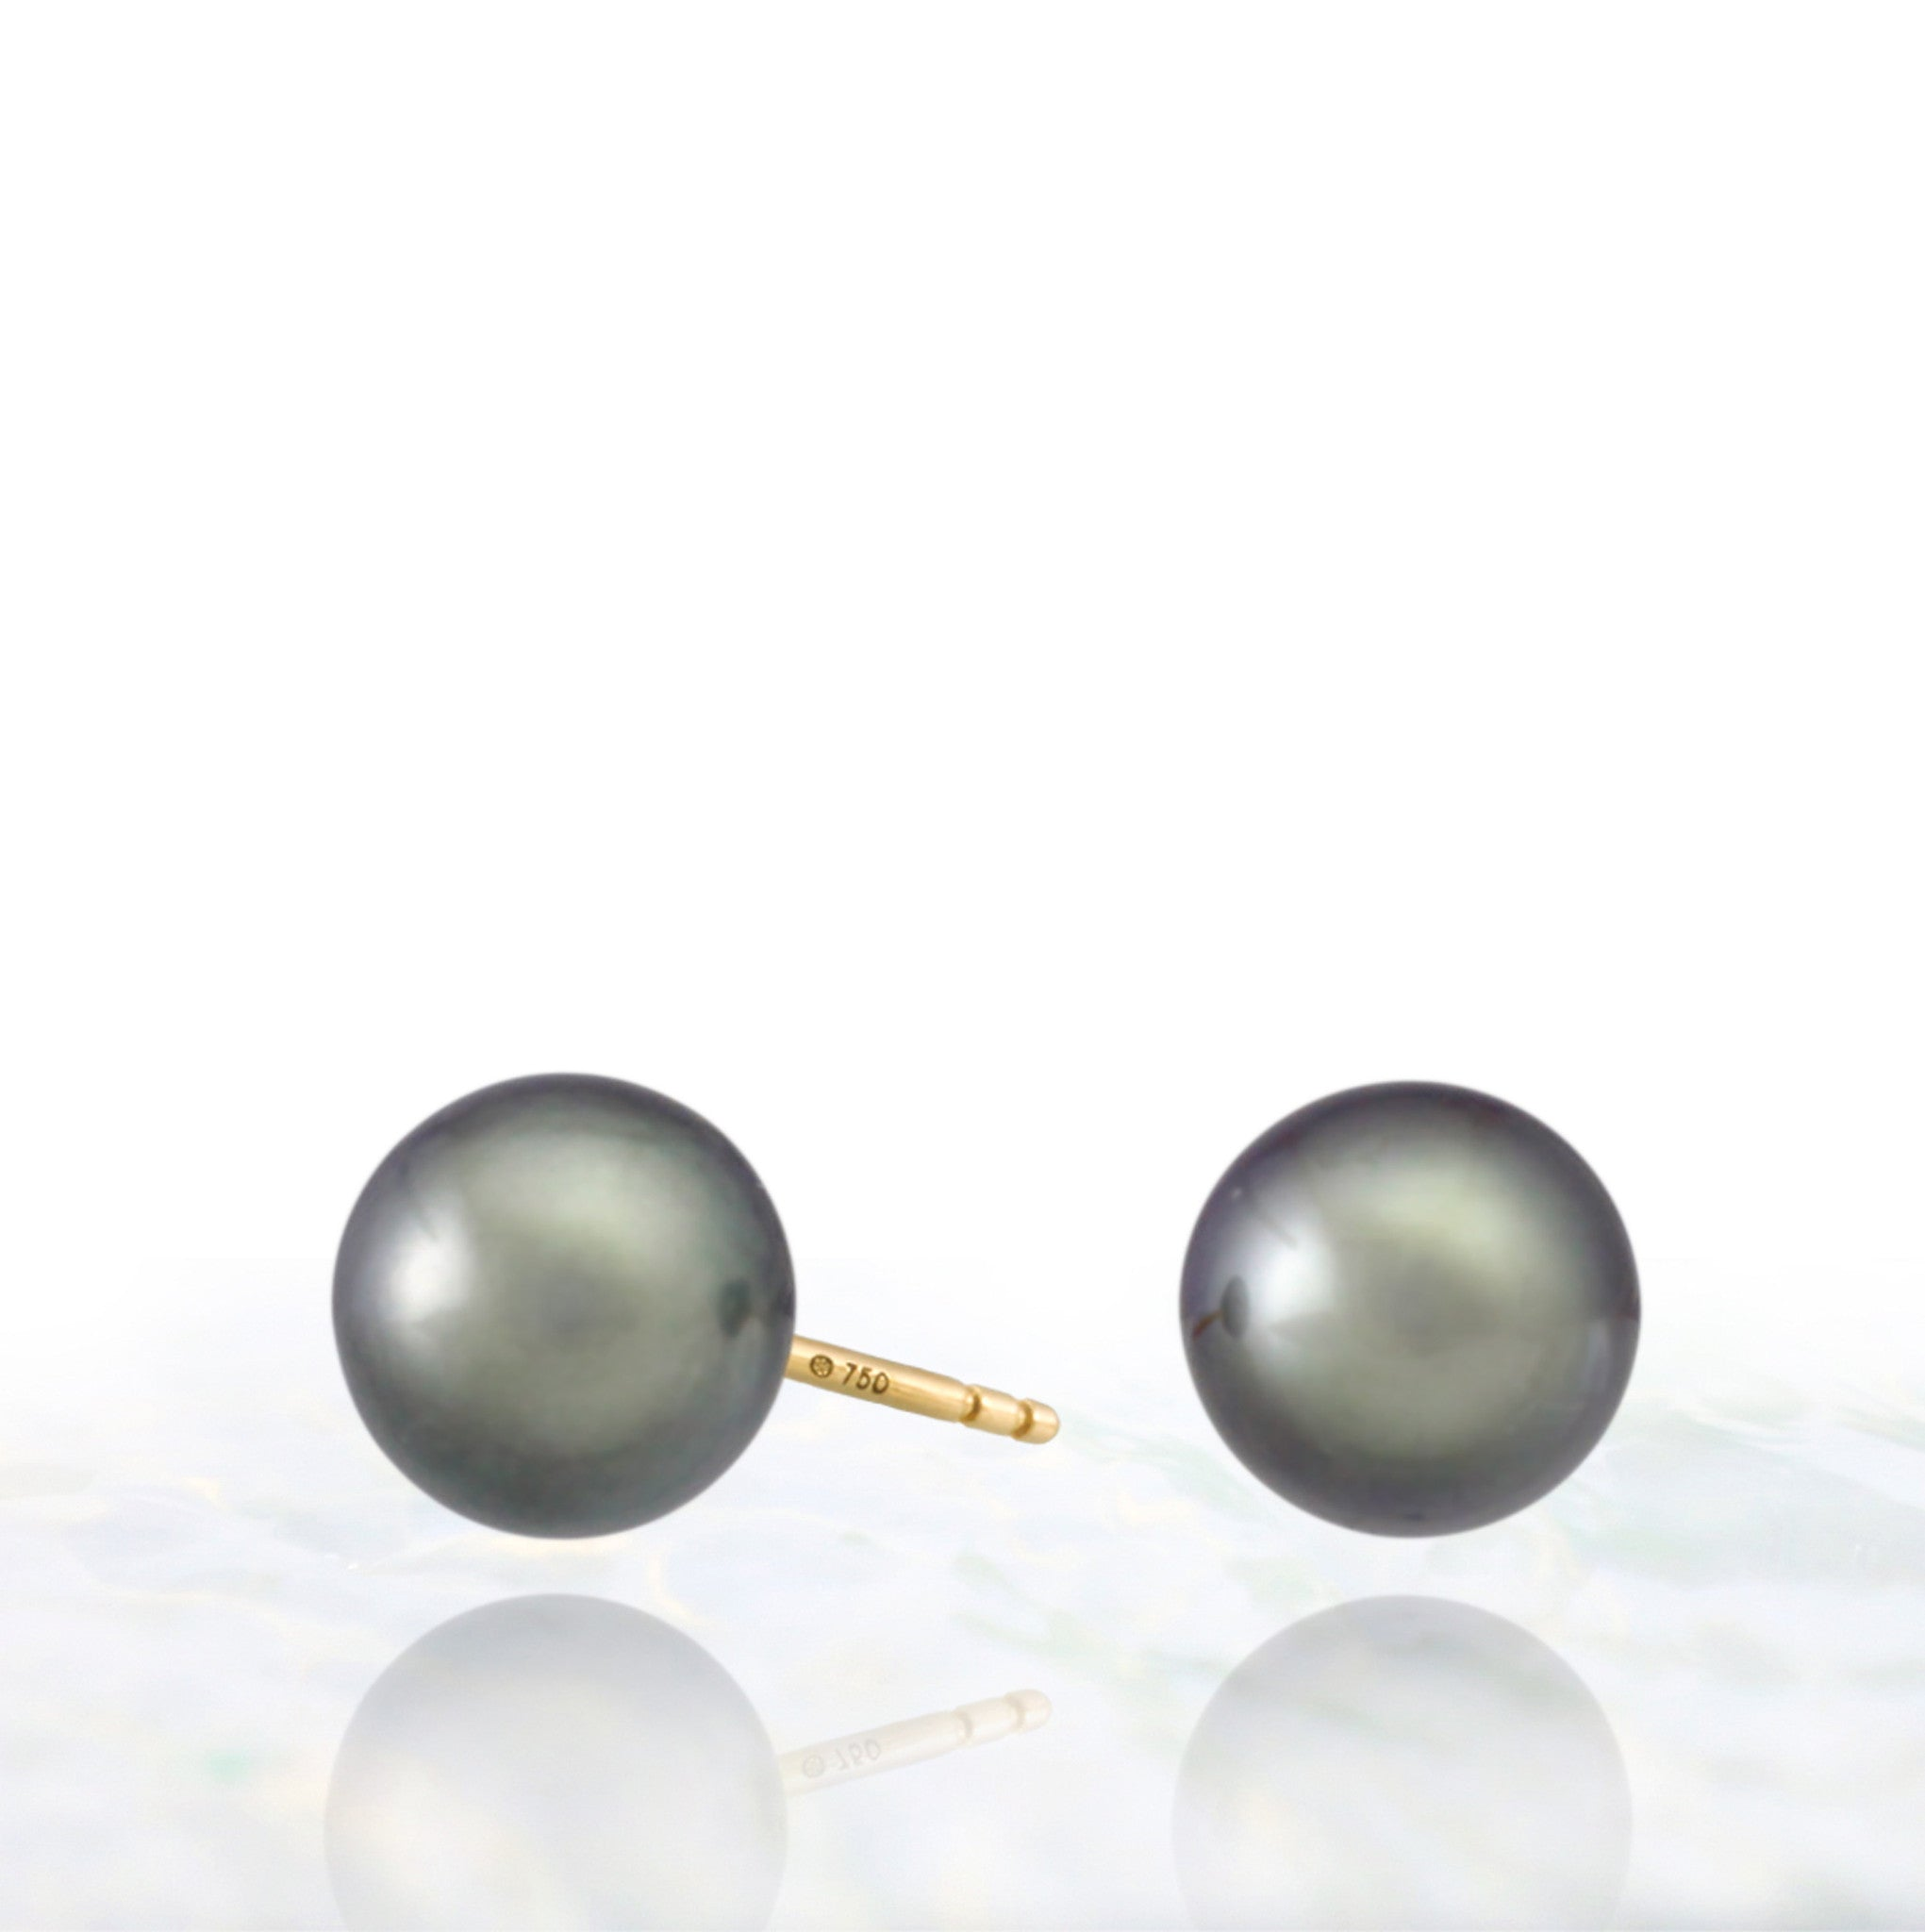 Tahitian pearl earrings - 18k yellow gold studs - EAYGPE00239